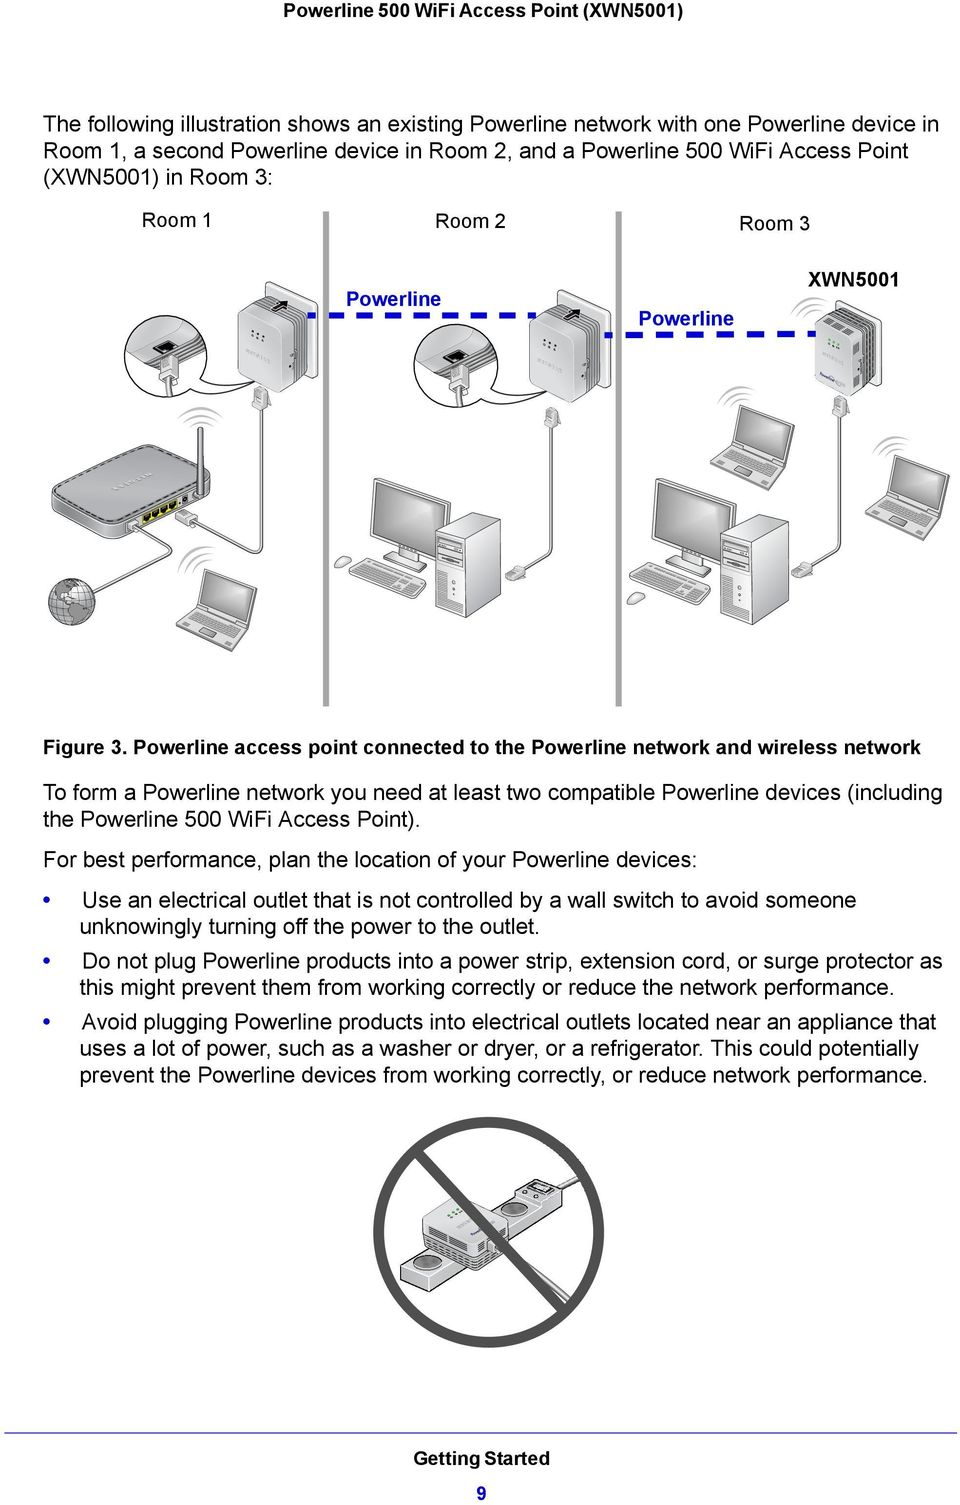 Powerline access point connected to the Powerline network and wireless network To form a Powerline network you need at least two compatible Powerline devices (including the Powerline 500 WiFi Access